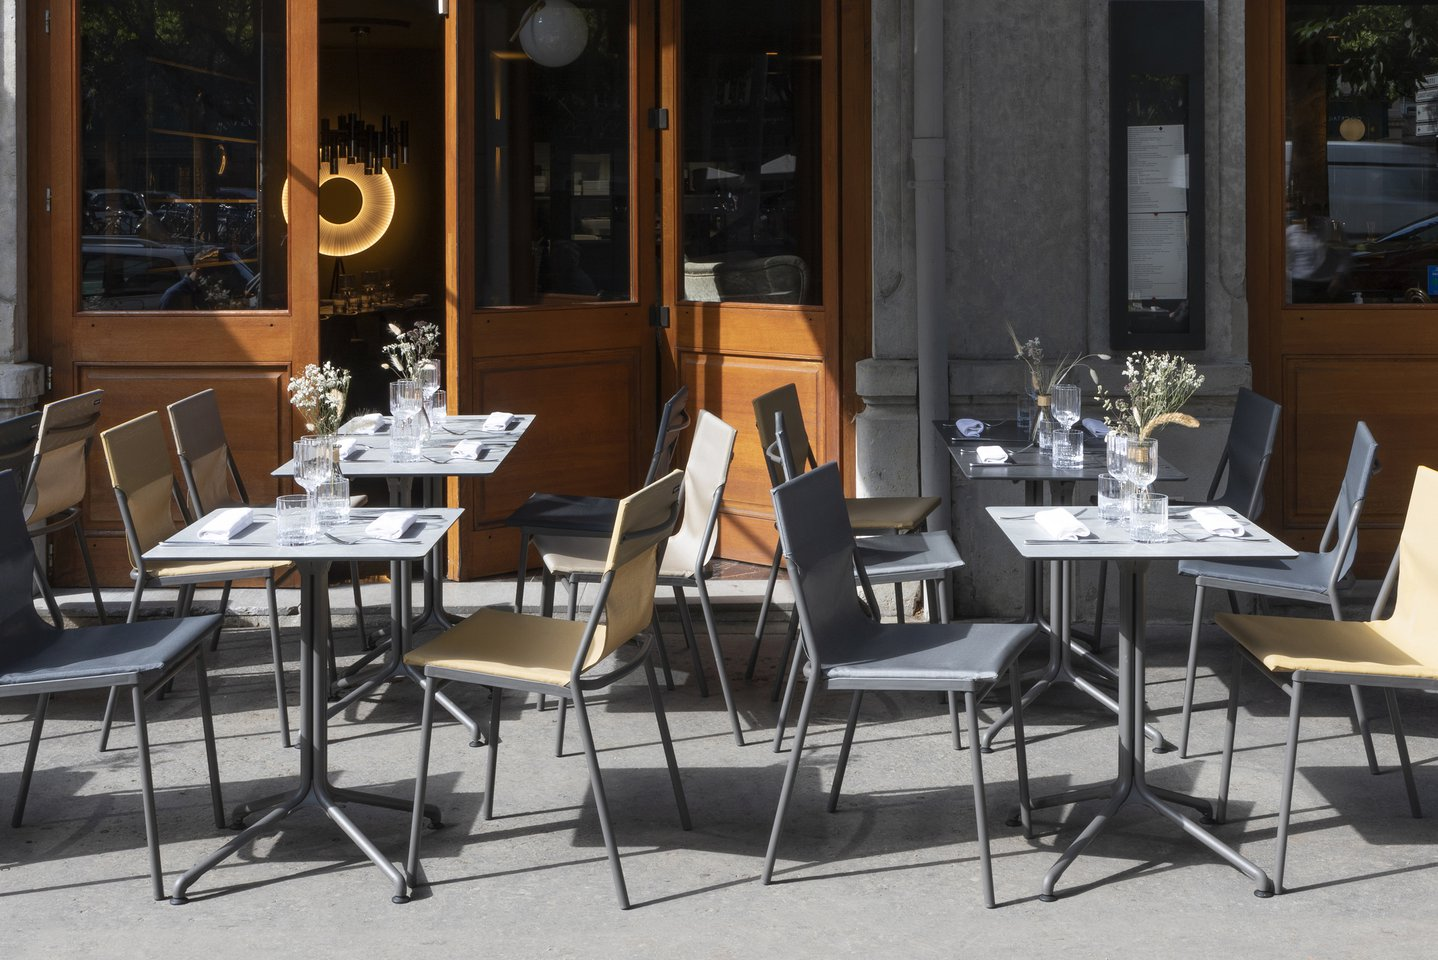 How to set up a restaurant patio ?